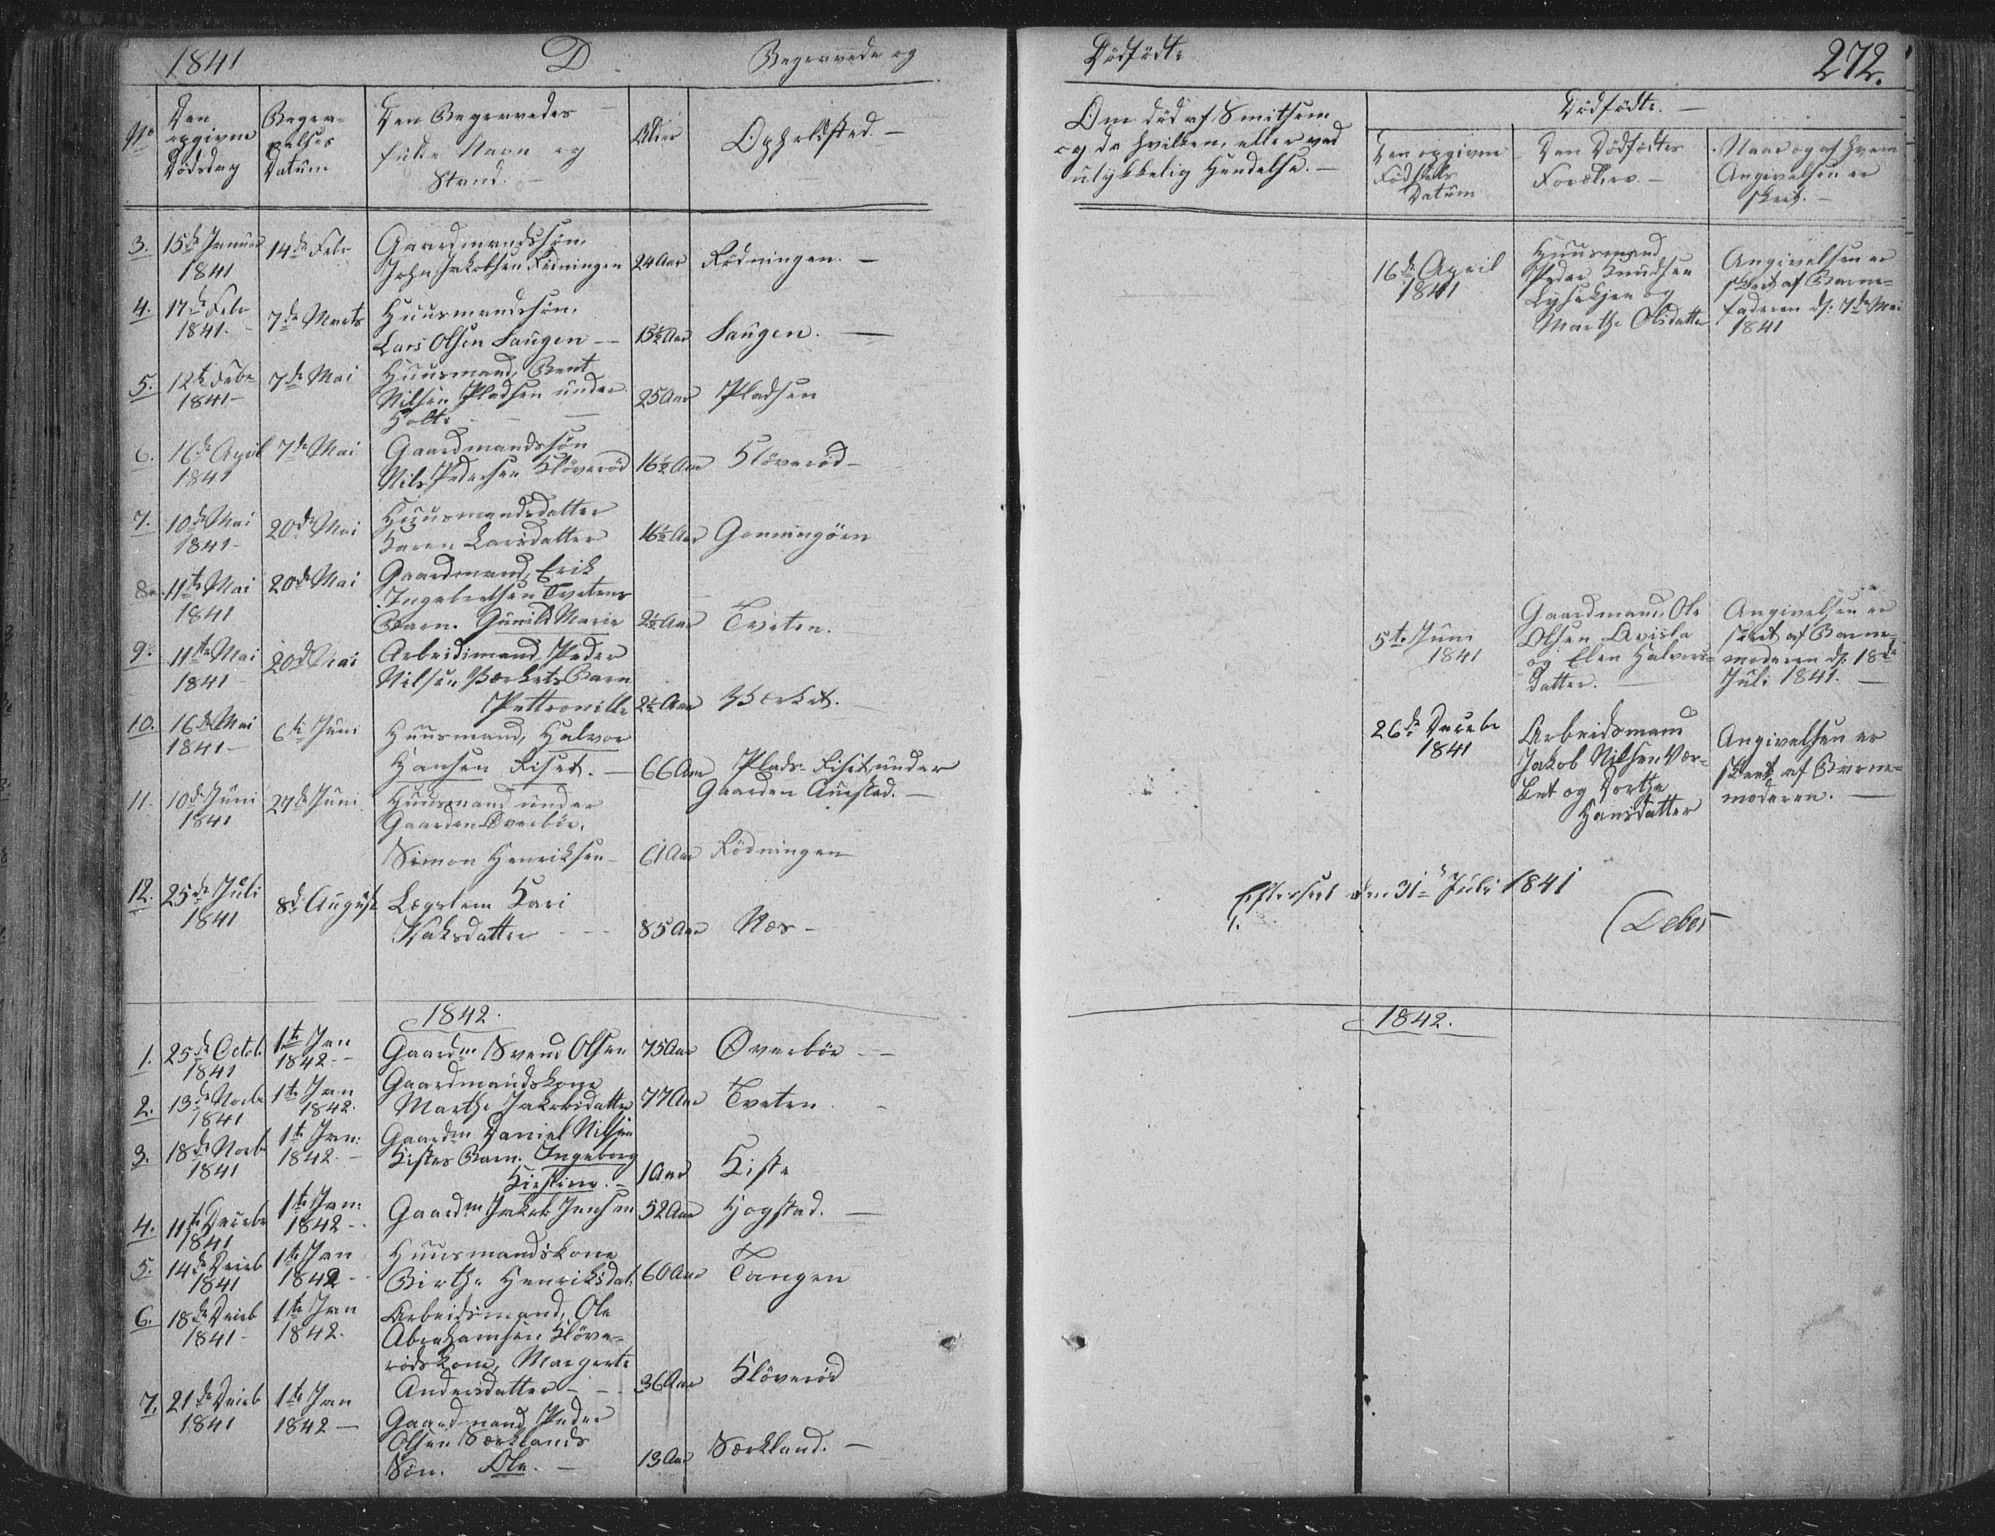 SAKO, Siljan kirkebøker, F/Fa/L0001: Parish register (official) no. 1, 1831-1870, p. 272